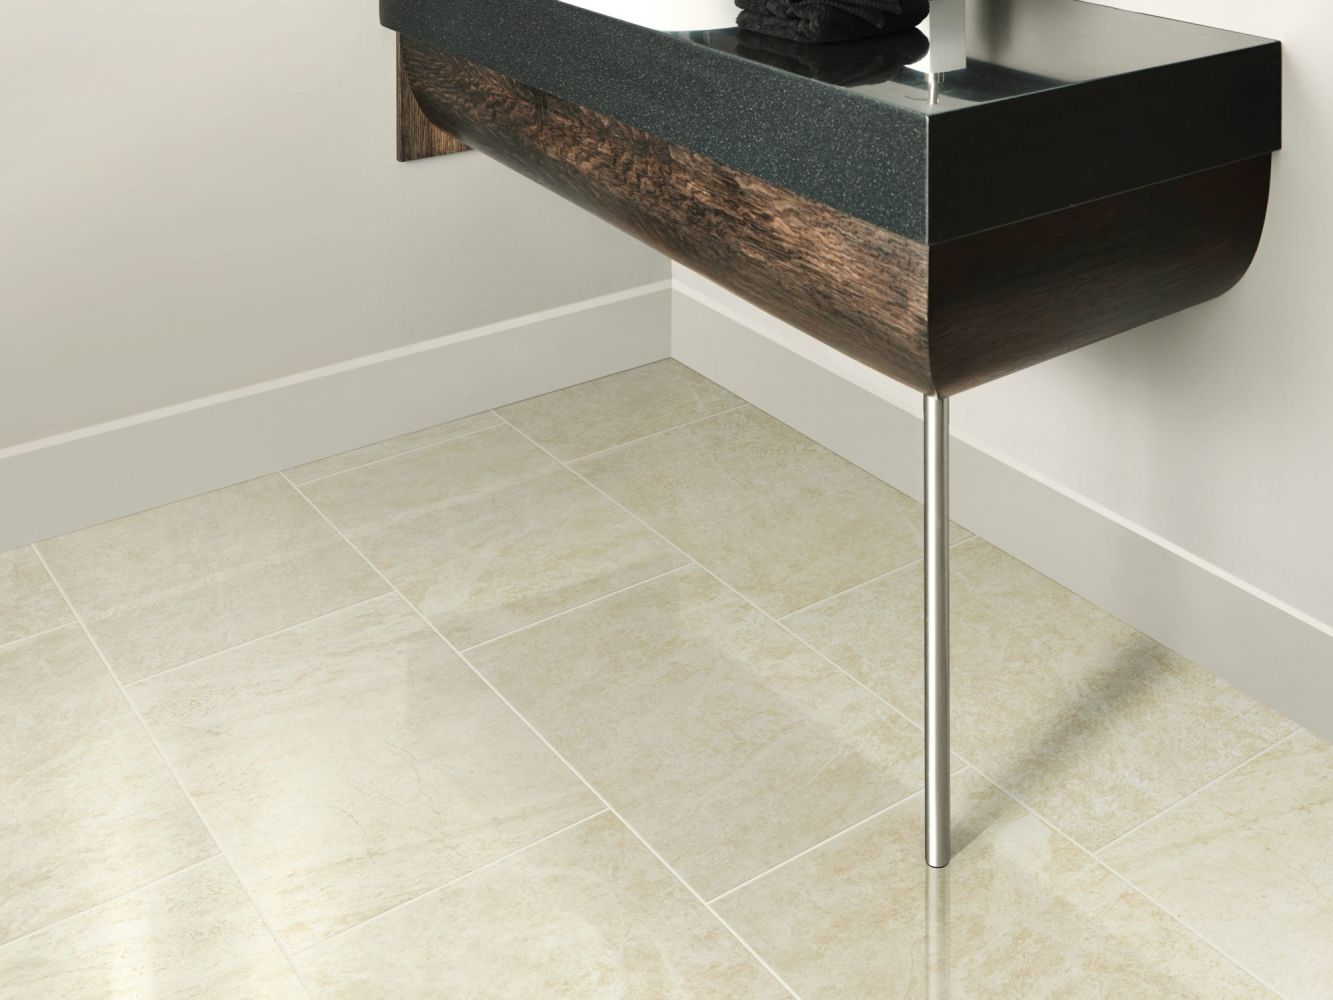 Shaw Floors Home Fn Gold Ceramic Marvel 12×24 Matte Allure 00200_TG02C